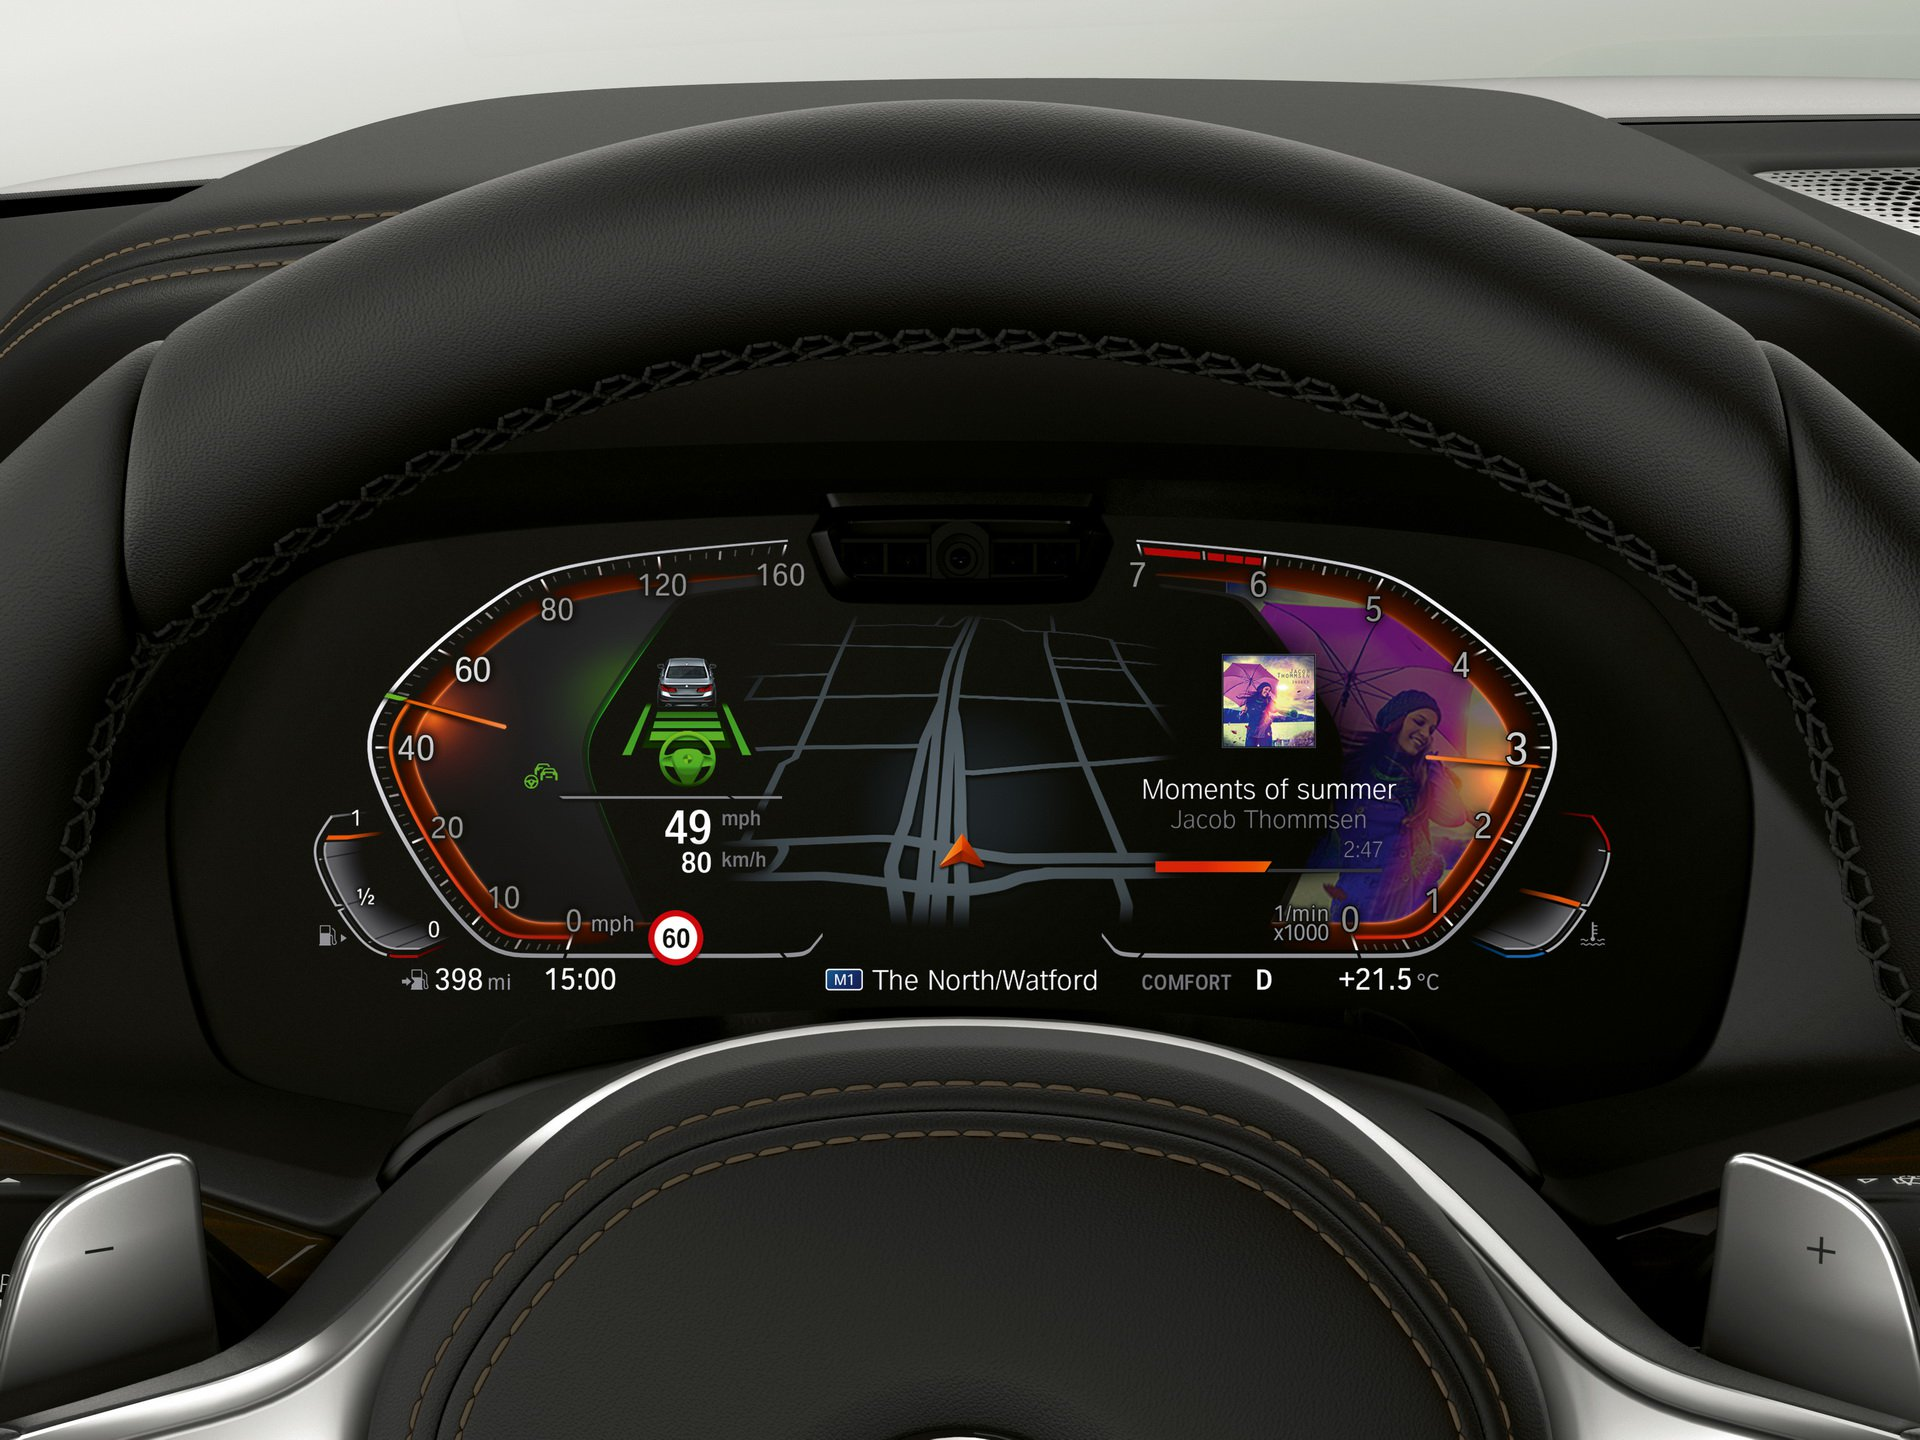 bmw-digital-cockpit-2.jpg